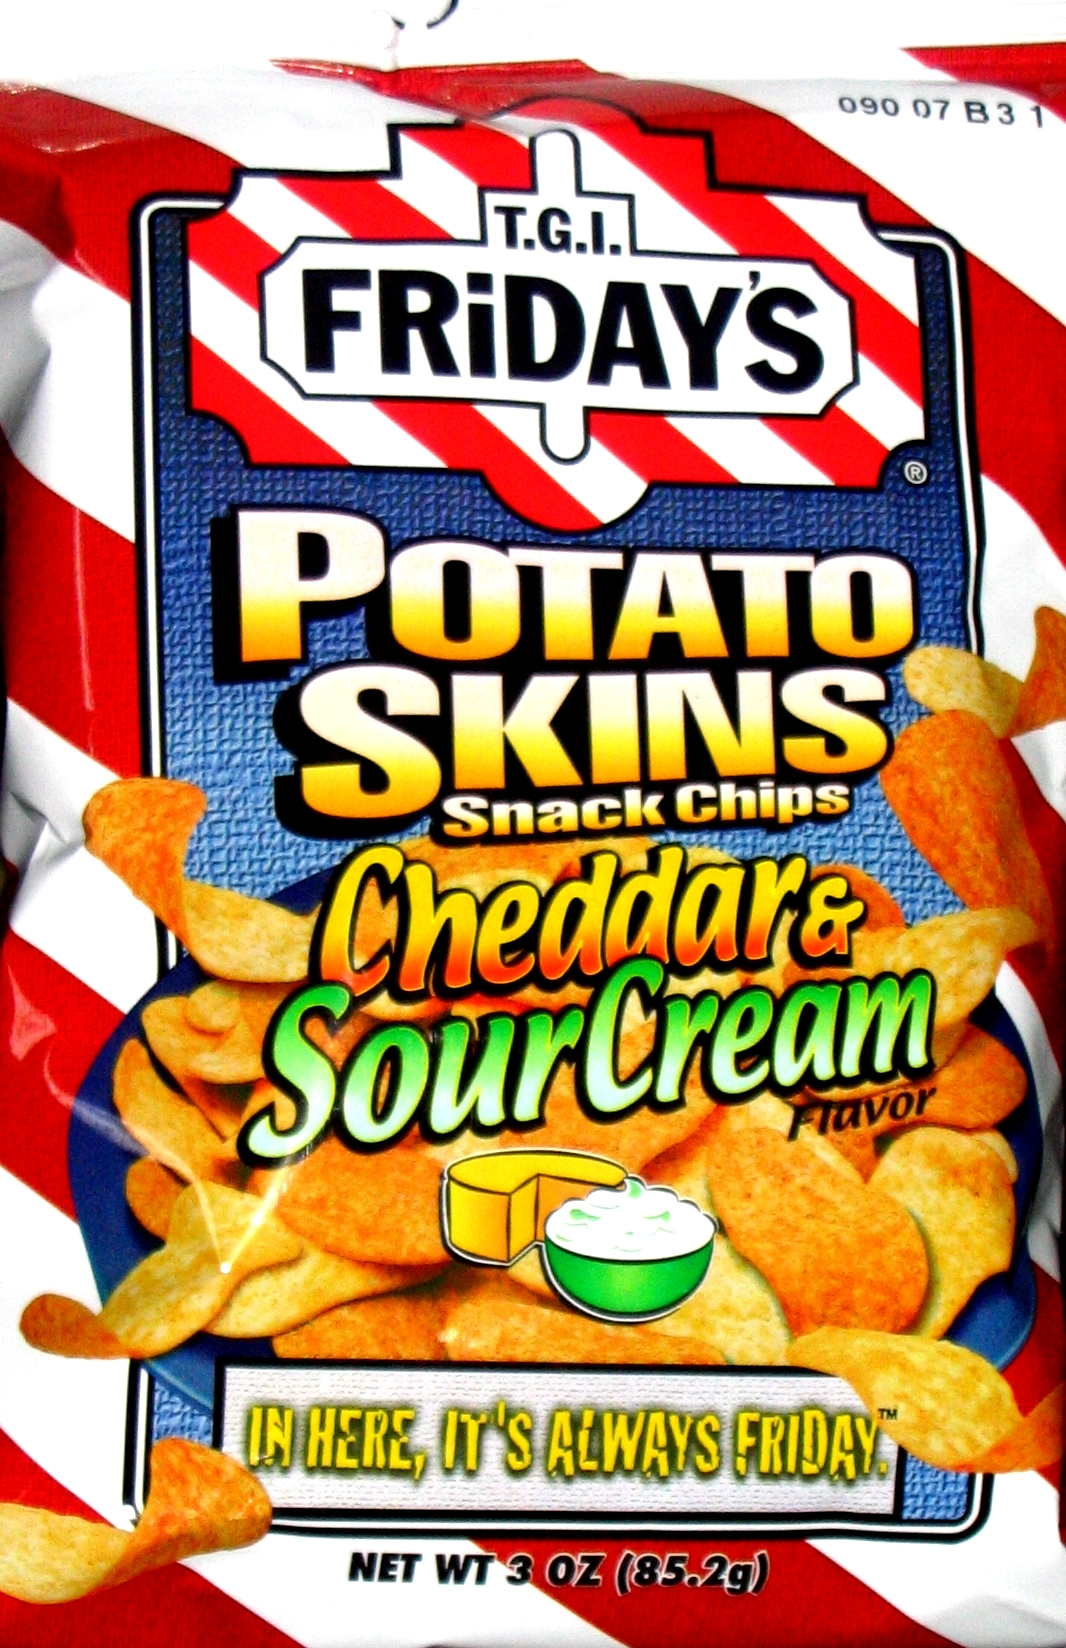 Tgif Potato Skins Chips Potato Skins Snack Chips